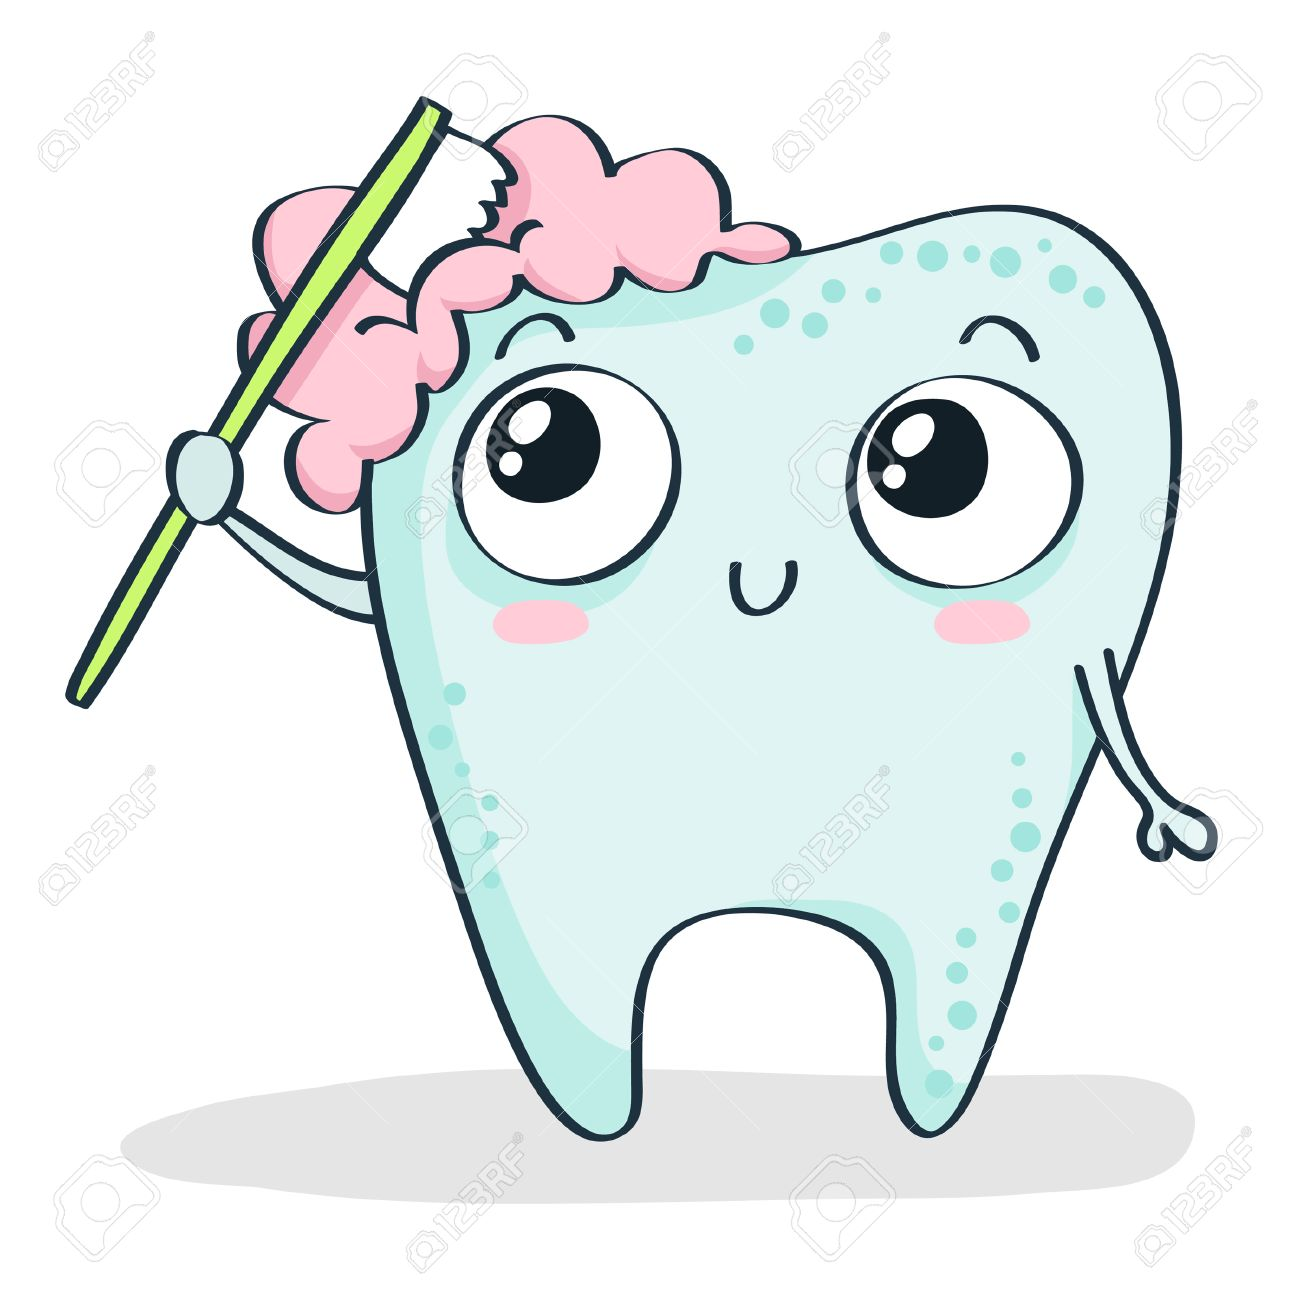 Cute Cartoon Tooth Brushing Itself Isolated On White Royalty Free Cliparts Vectors And Stock Illustration Image 40409658